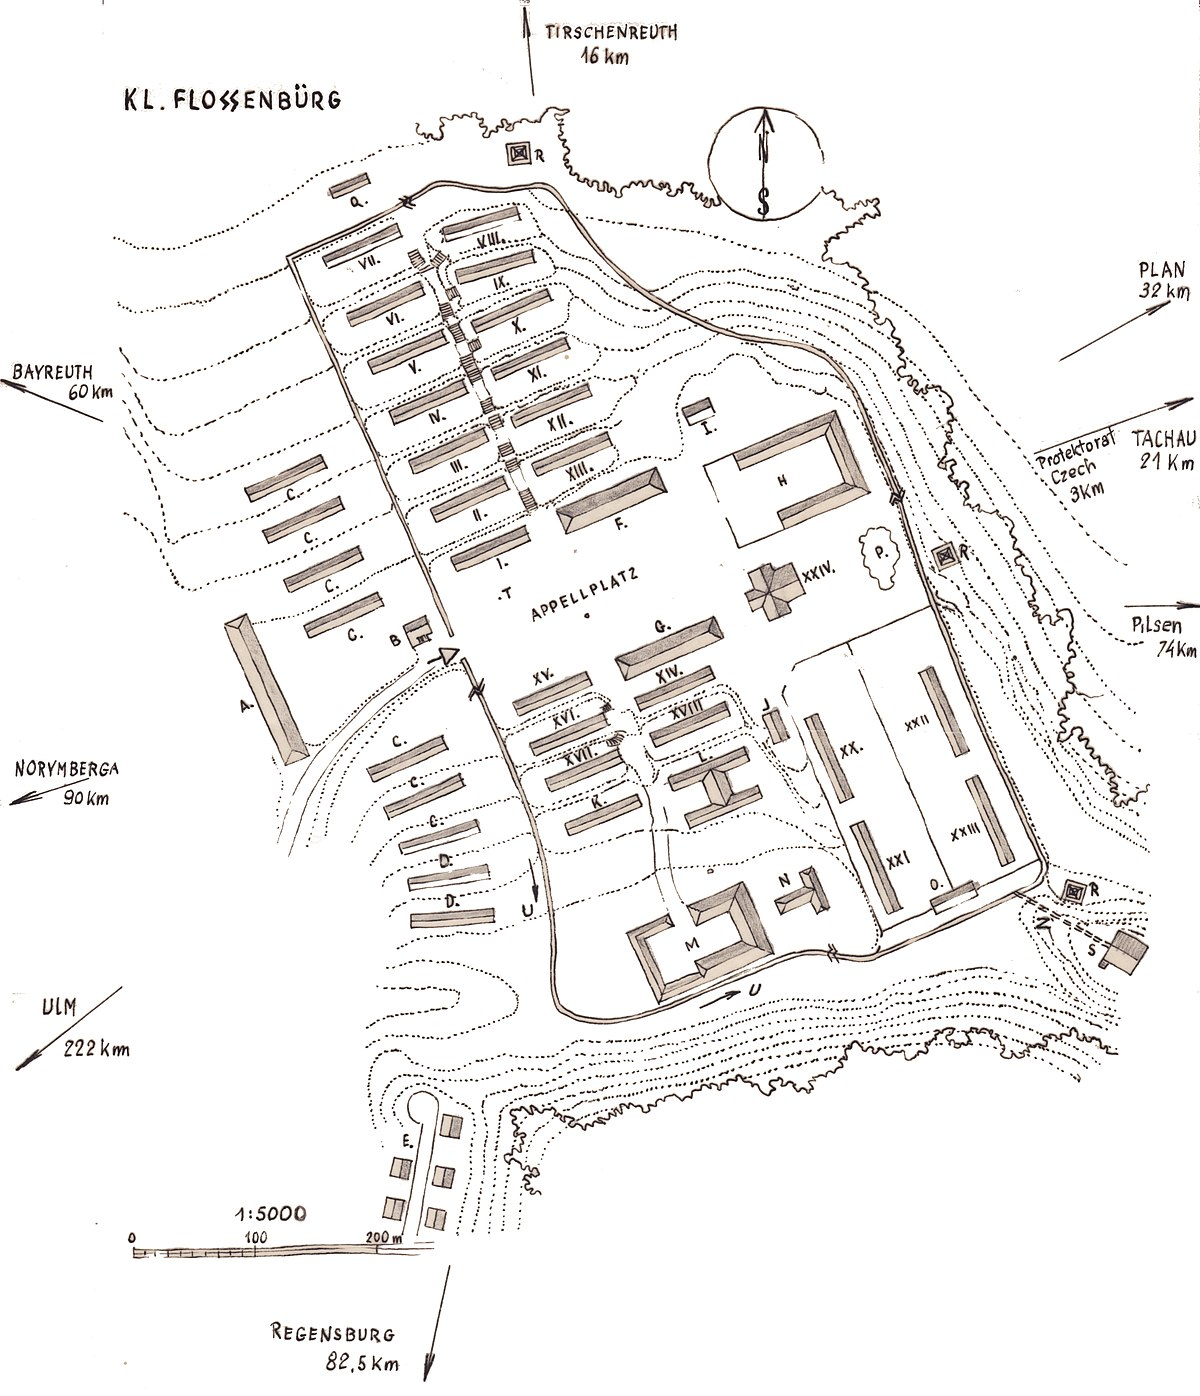 Flossenbürg Concentration Camp Wikipedia - Us concentration camps ww2 map